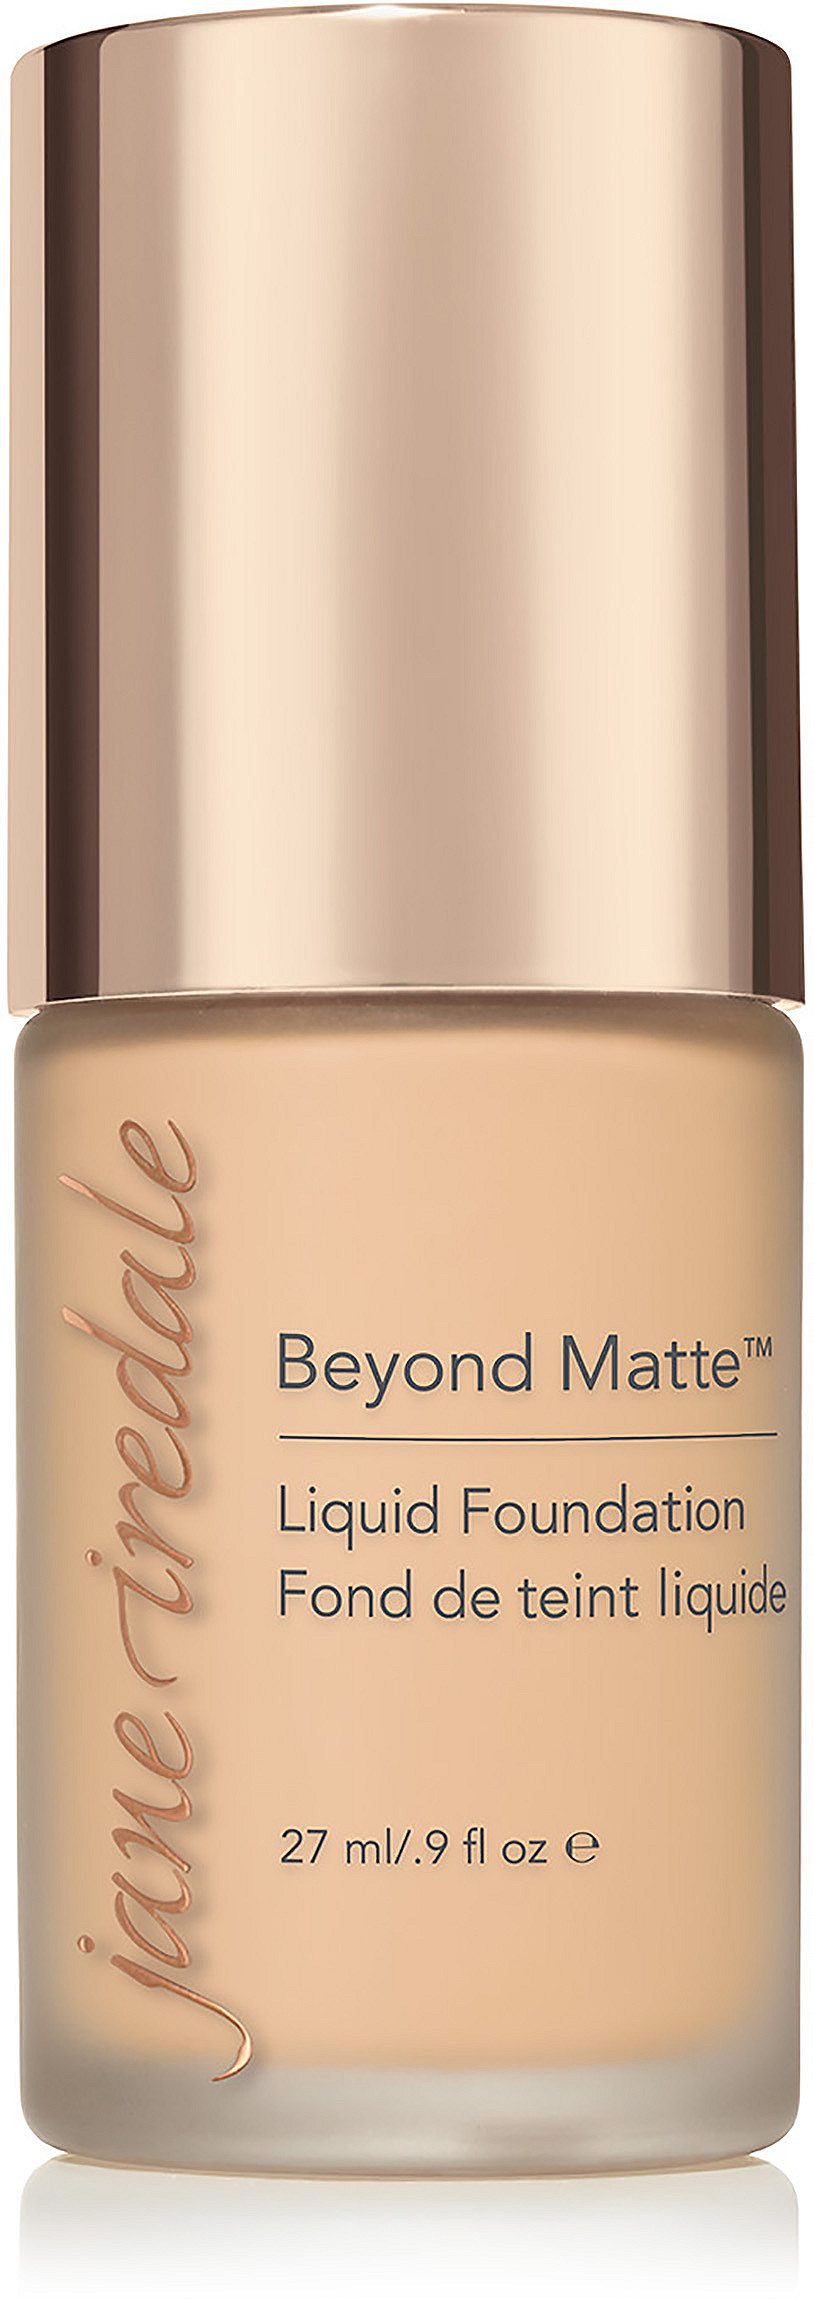 jane iredale - jane iredale Online Only Beyond Matte Liquid Foundation